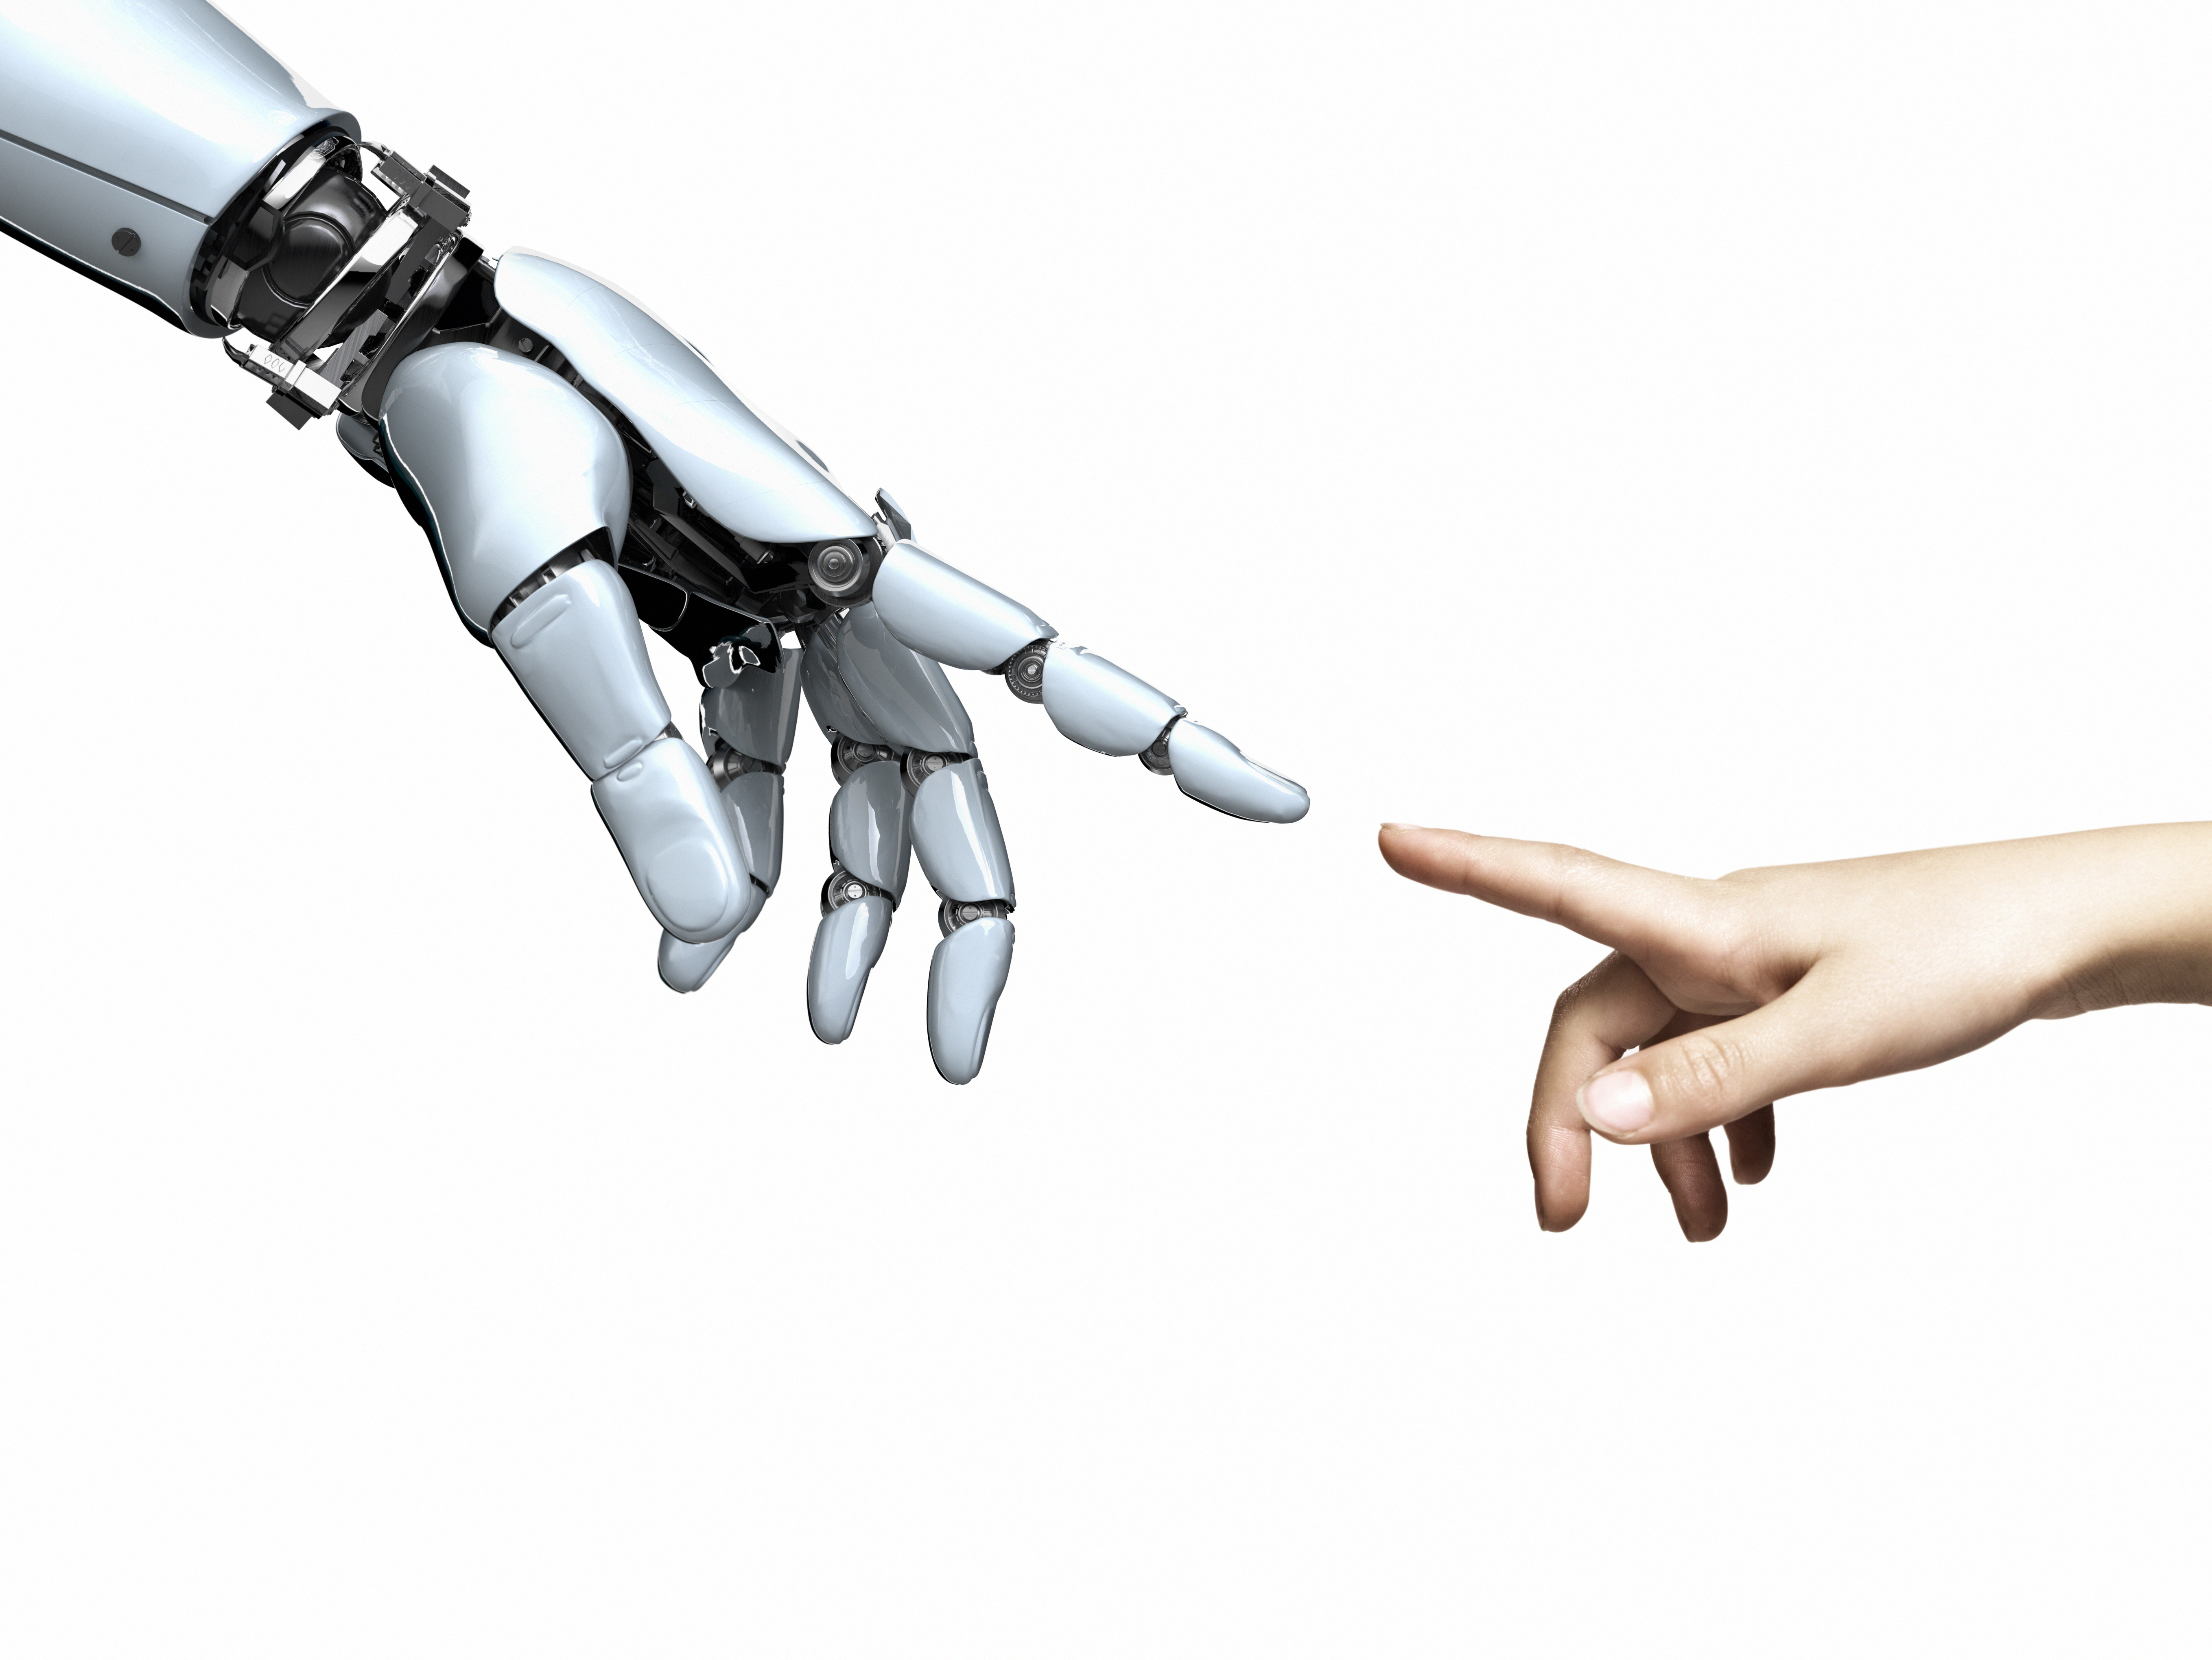 Cybernetic robot hand and child's hand point toward each other.